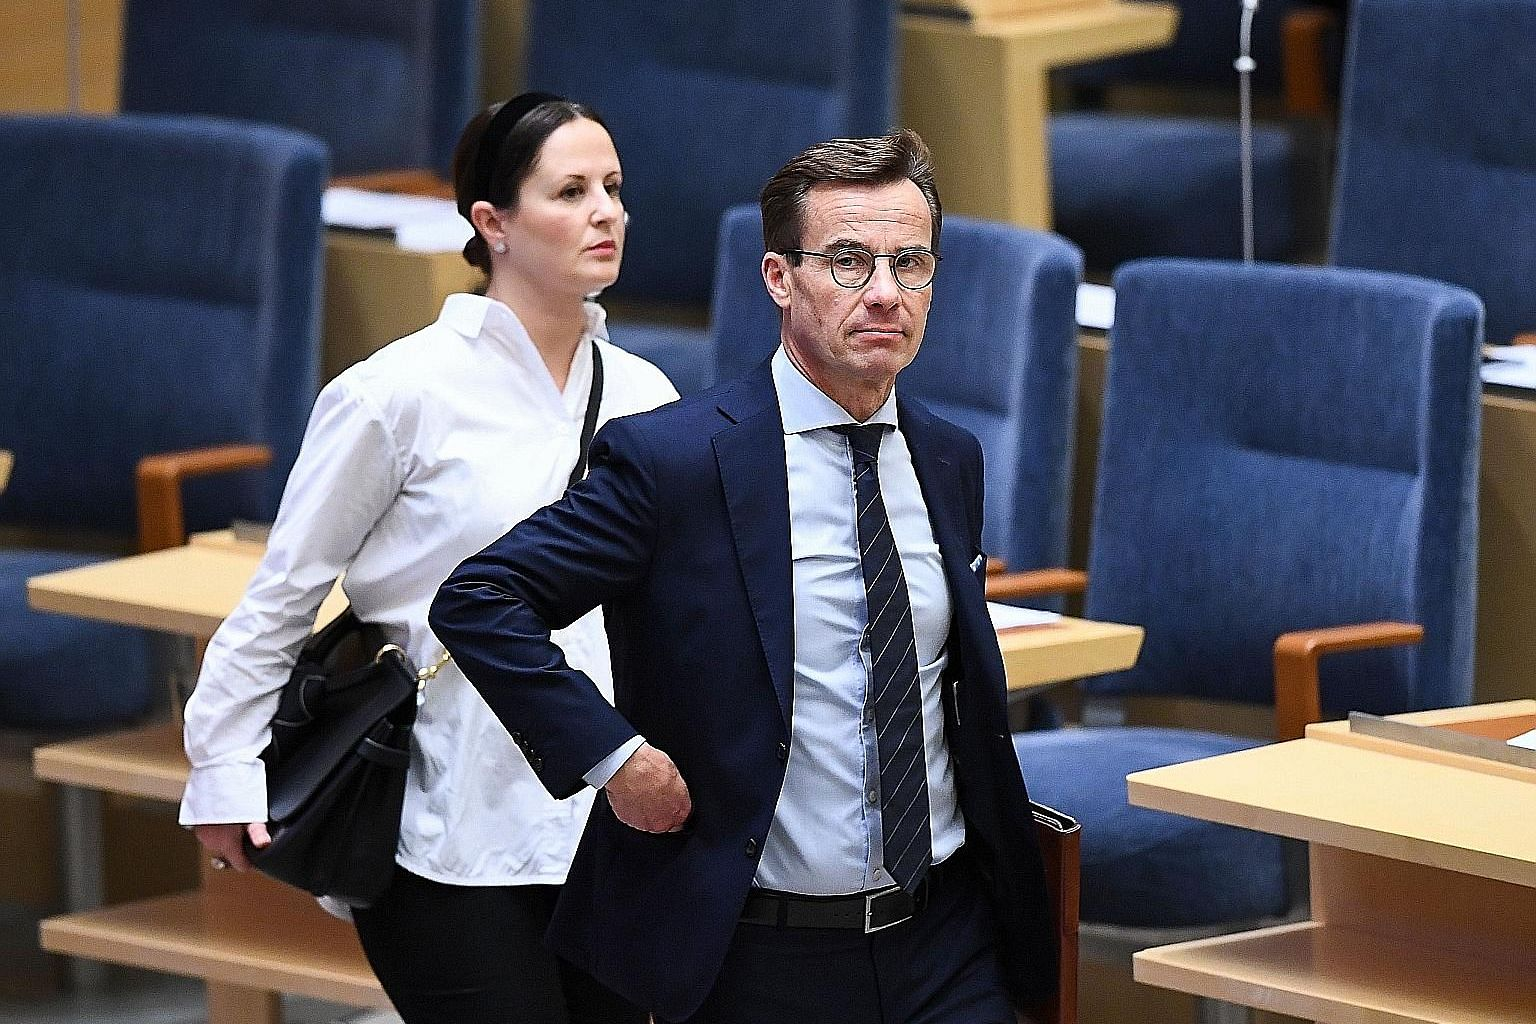 The Swedish Parliament on Wednesday rejected an attempt by Mr Ulf Kristersson, (left) leader of the centre-right Moderate Party, to form a minority Cabinet that would have had to rely on the support of the ultranationalist Sweden Democrats to make im